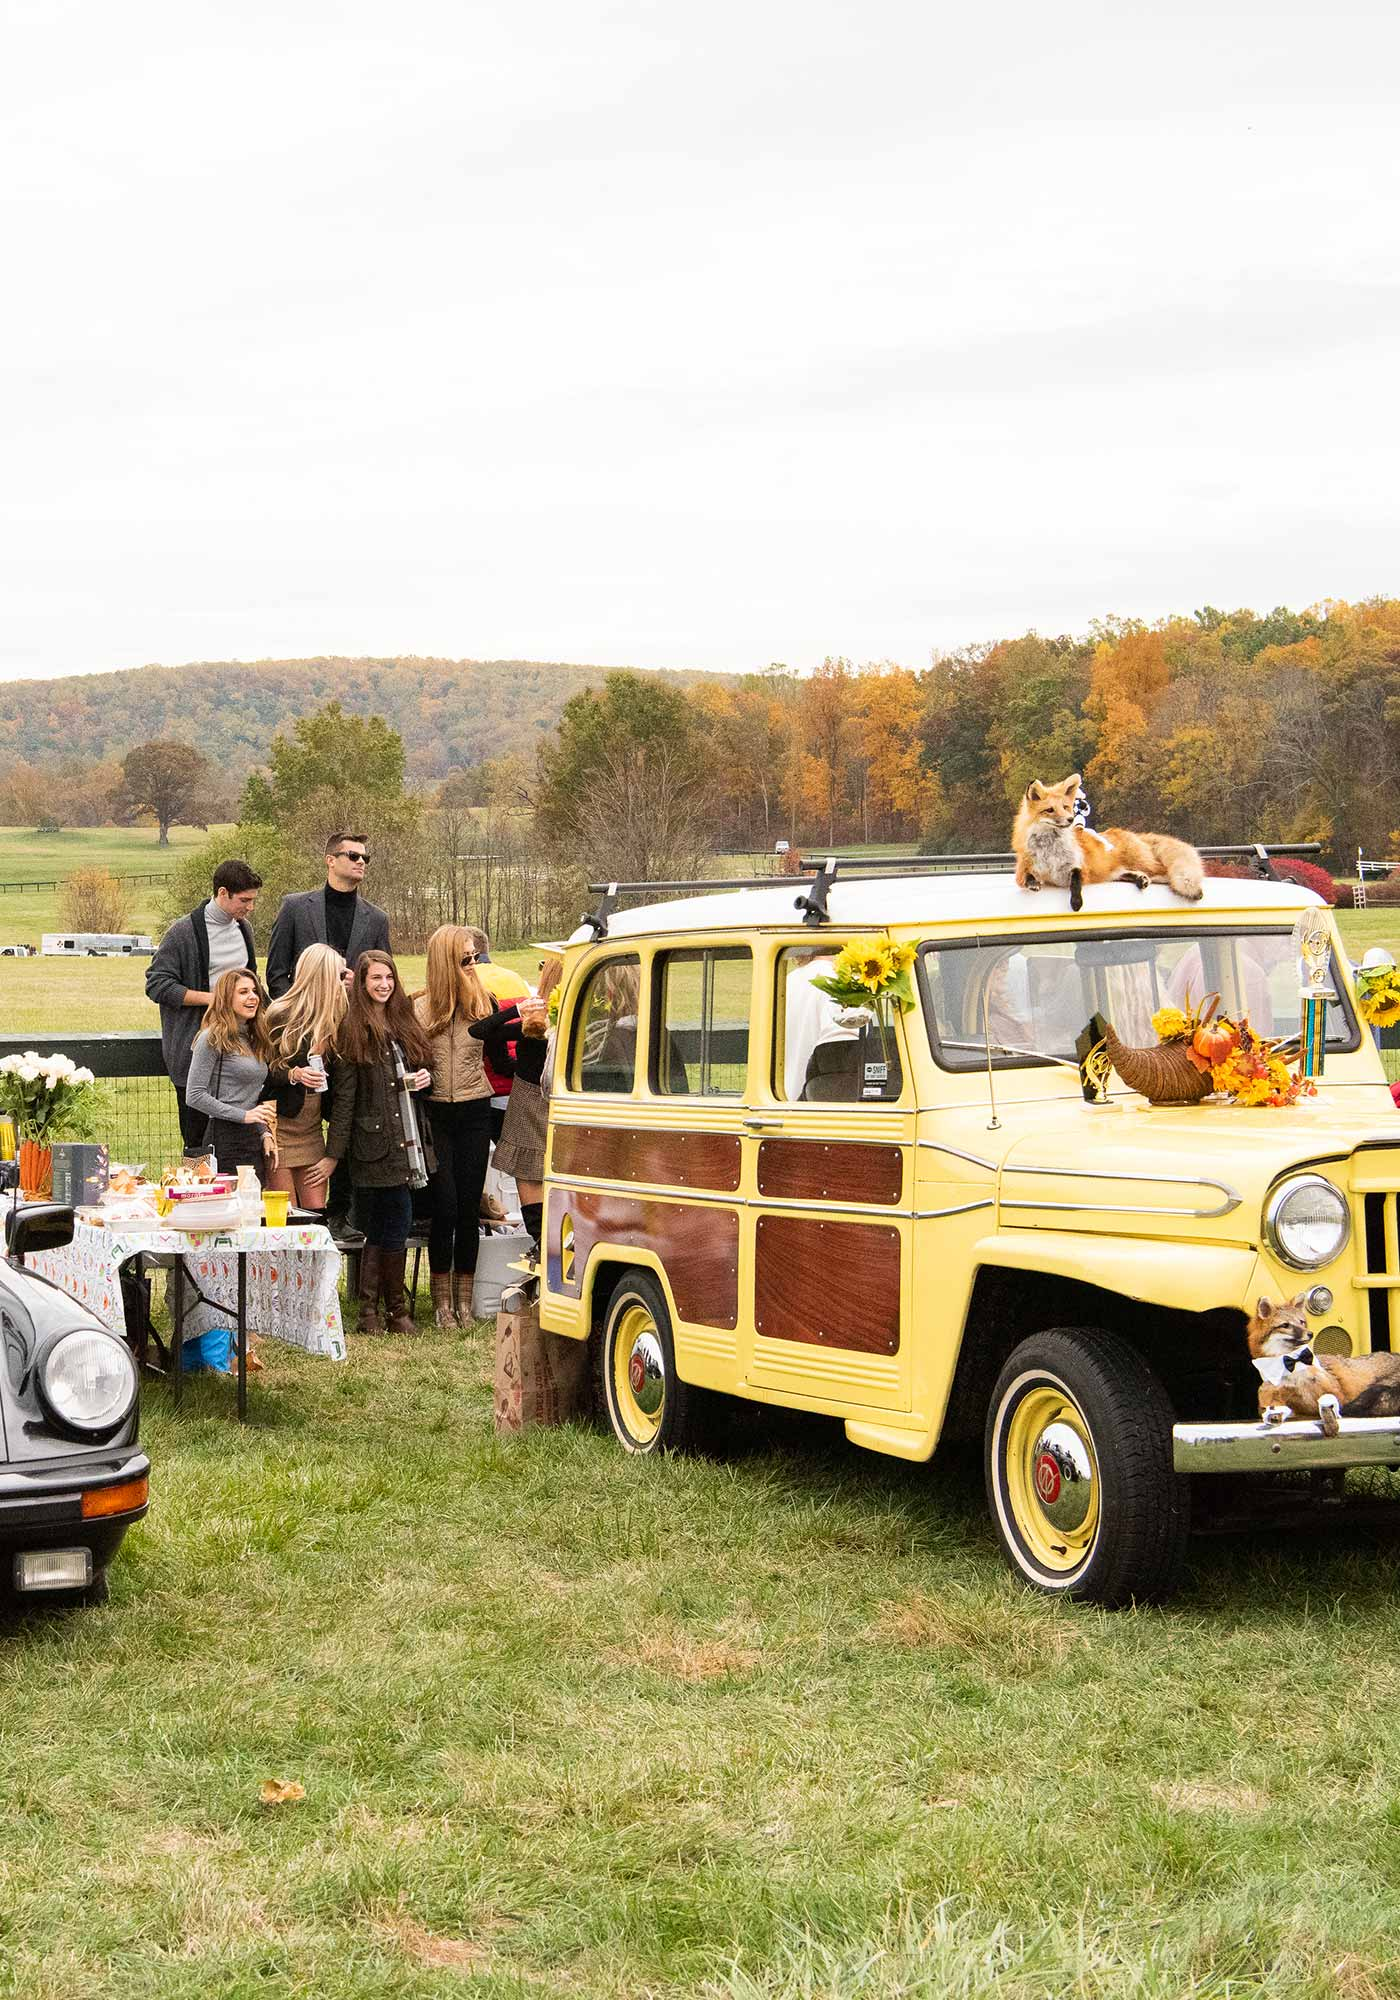 Virginia Gold Cup car, Image: © Wine & Country Life